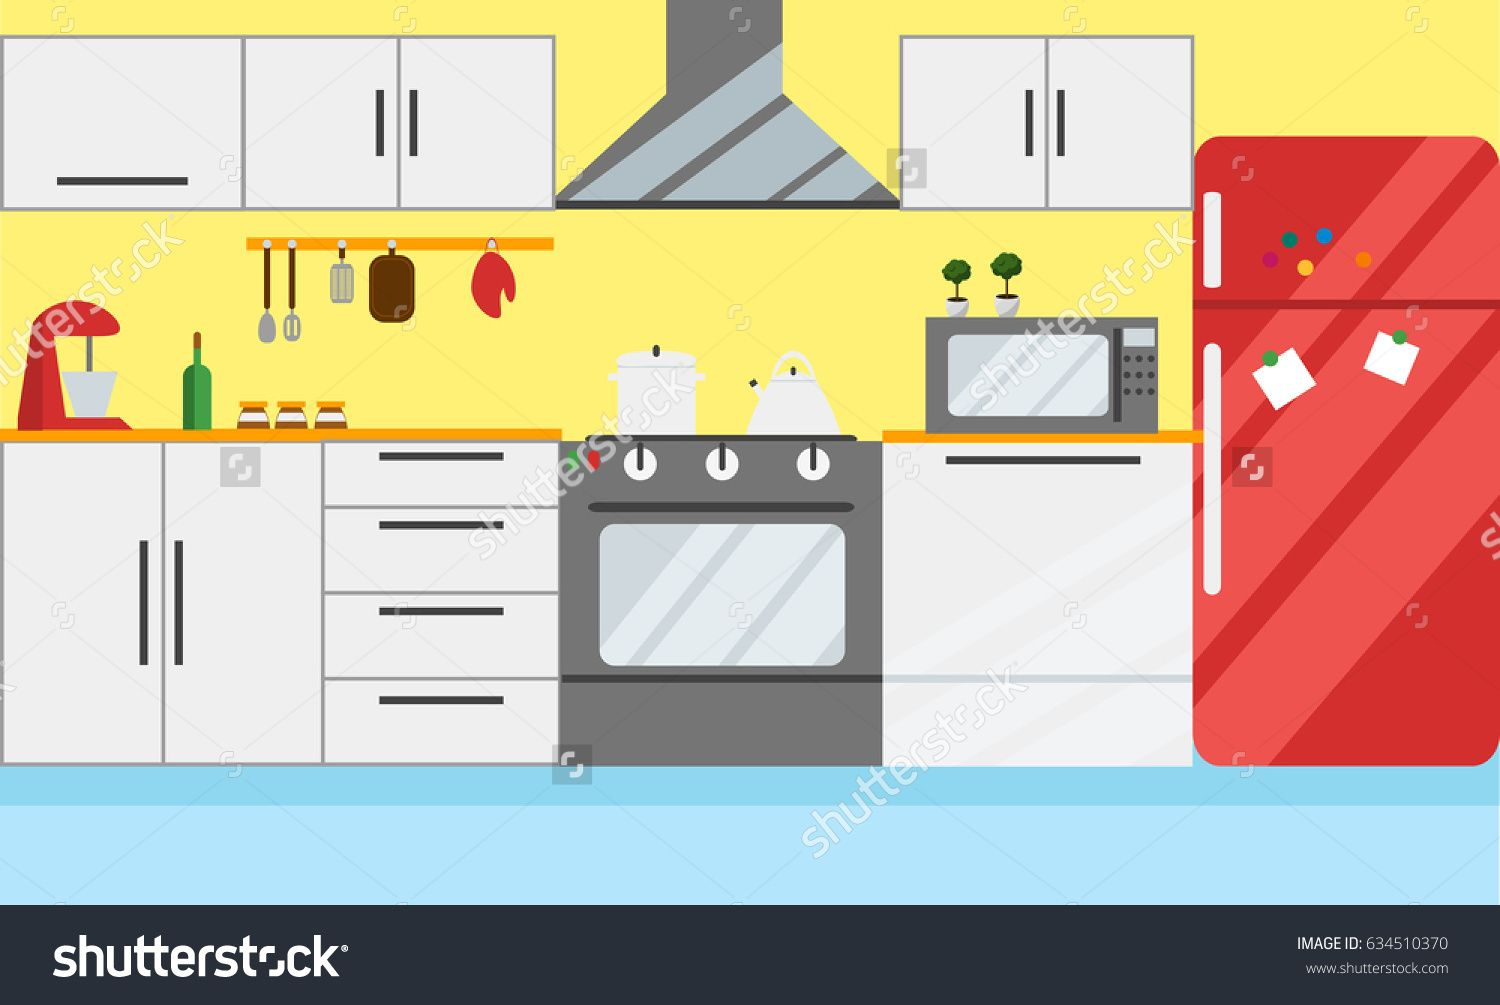 Cartoon kitchen with cabinets and window vector art illustration - Kitchen Vector Illustration Flat Design Cute Drawing Of Bright Kitchen